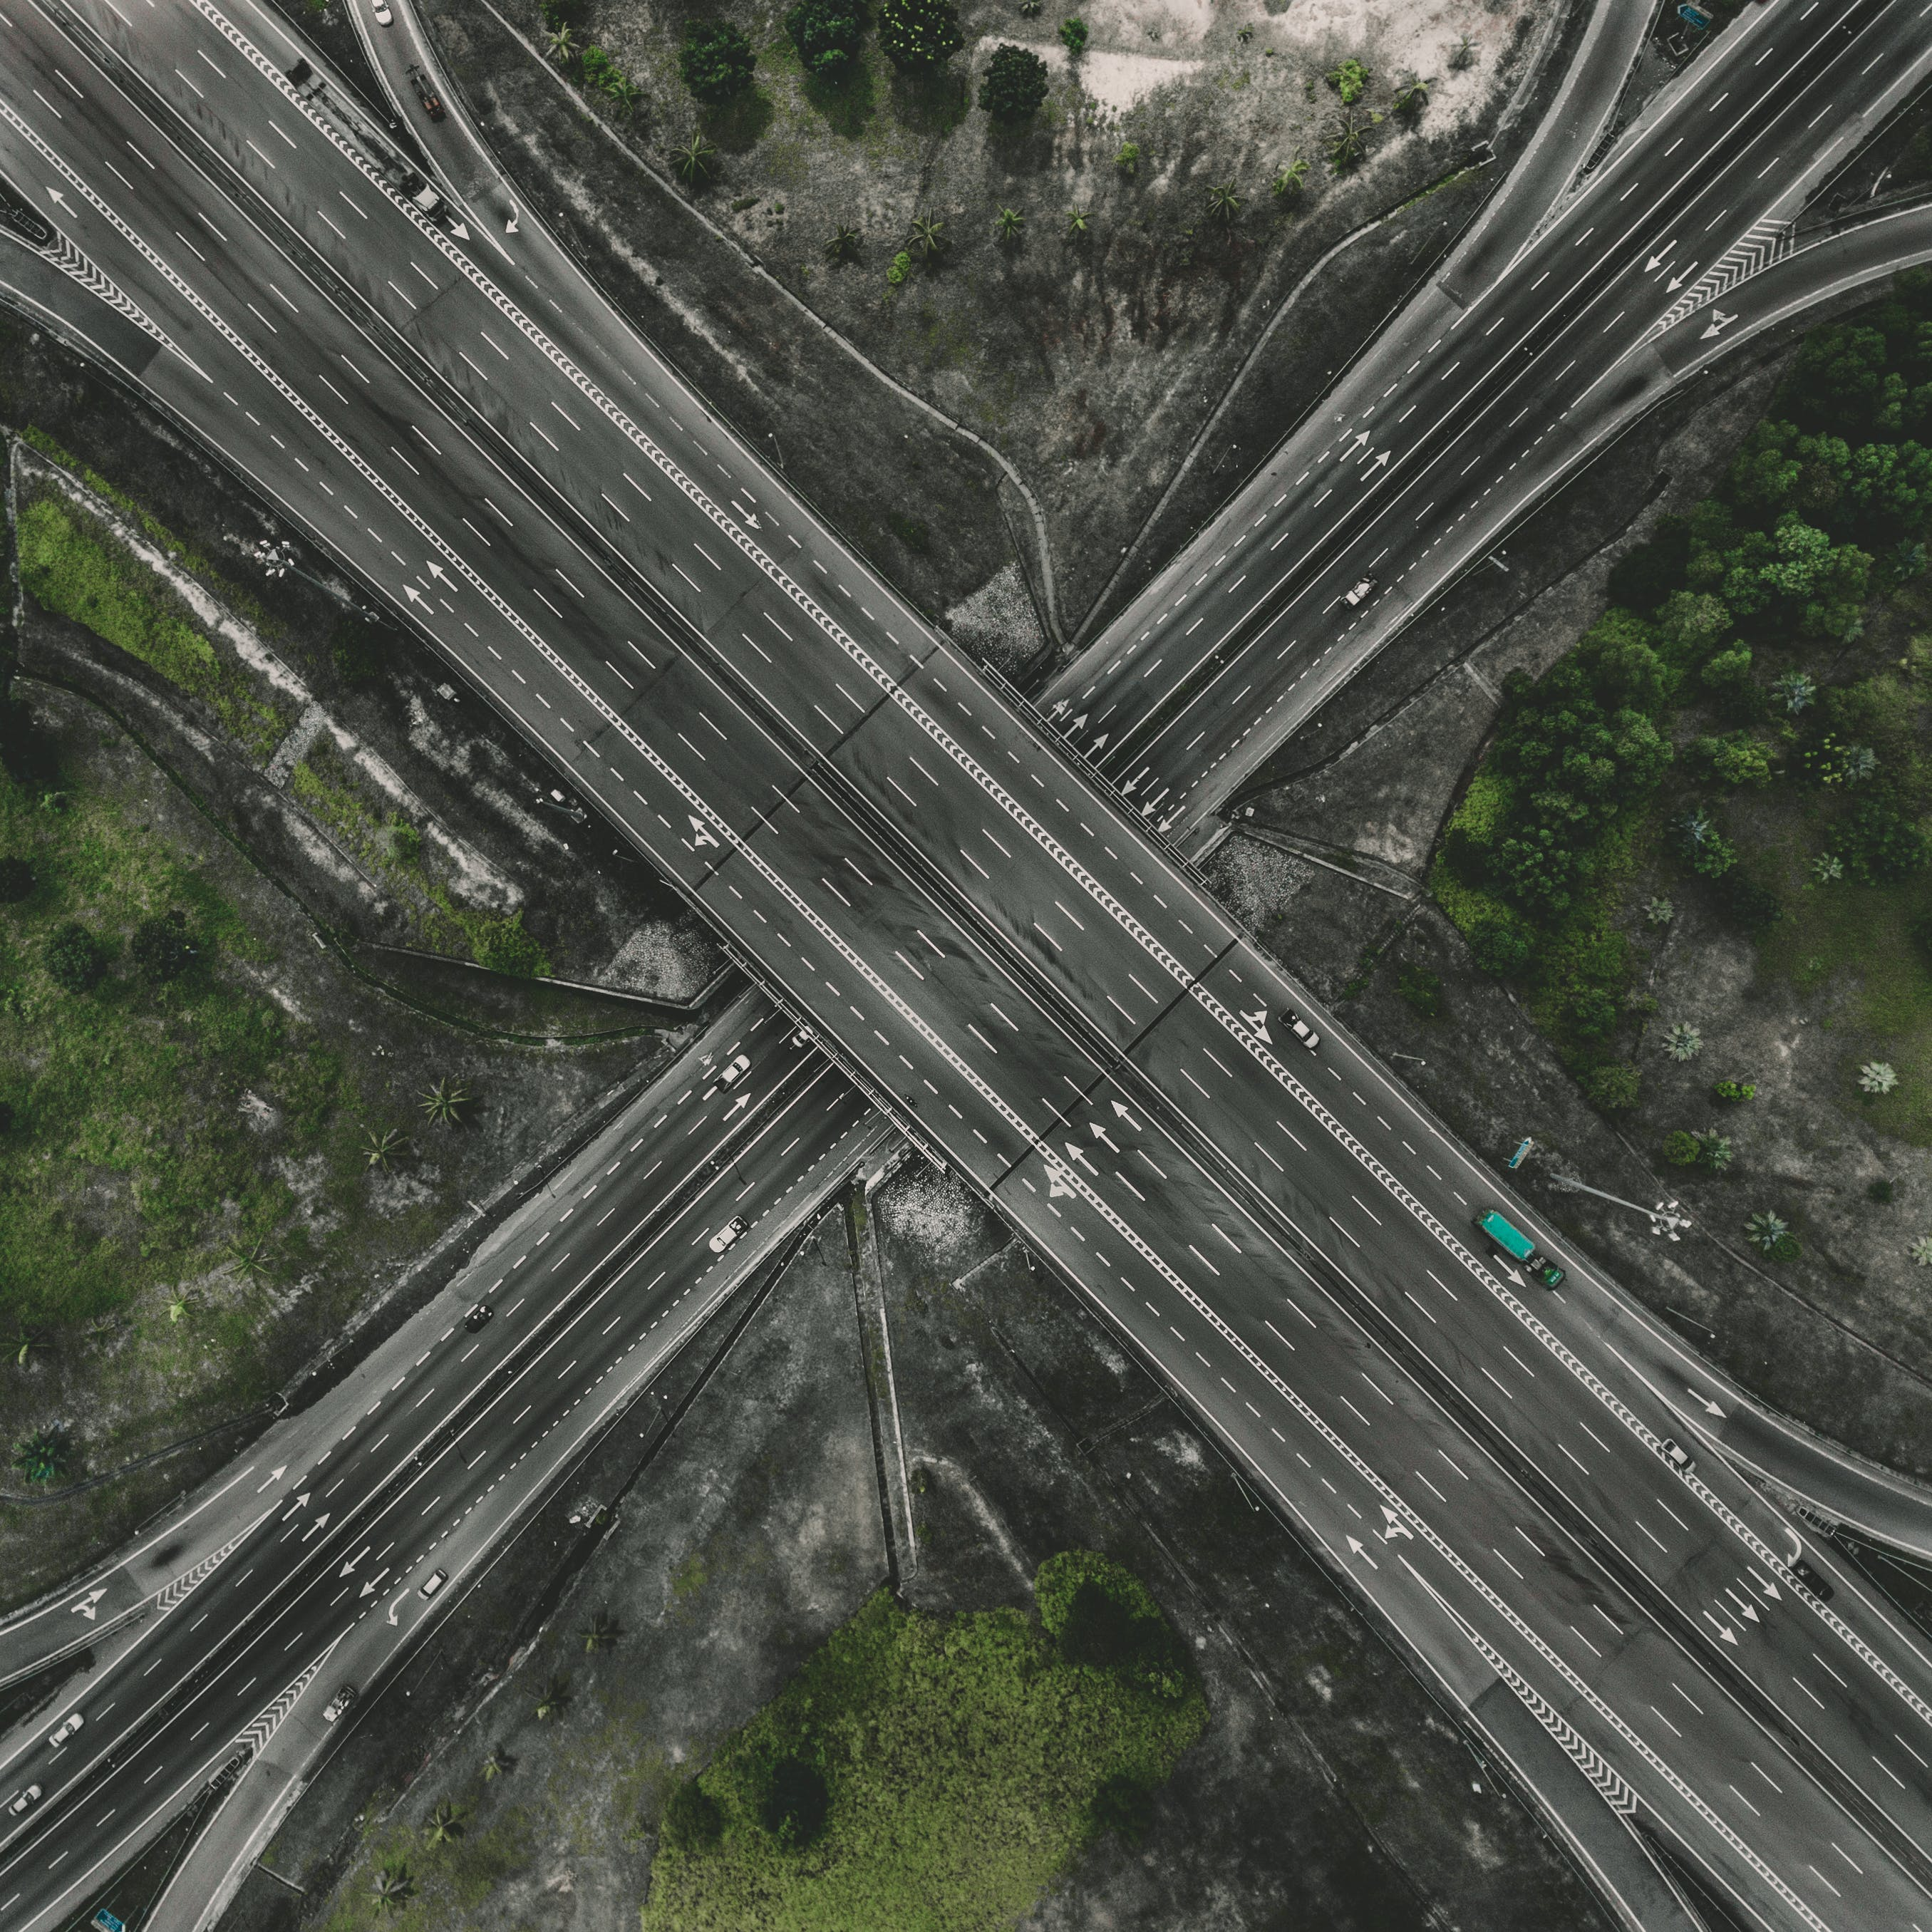 Aerial Photo of Gray Concrete Road